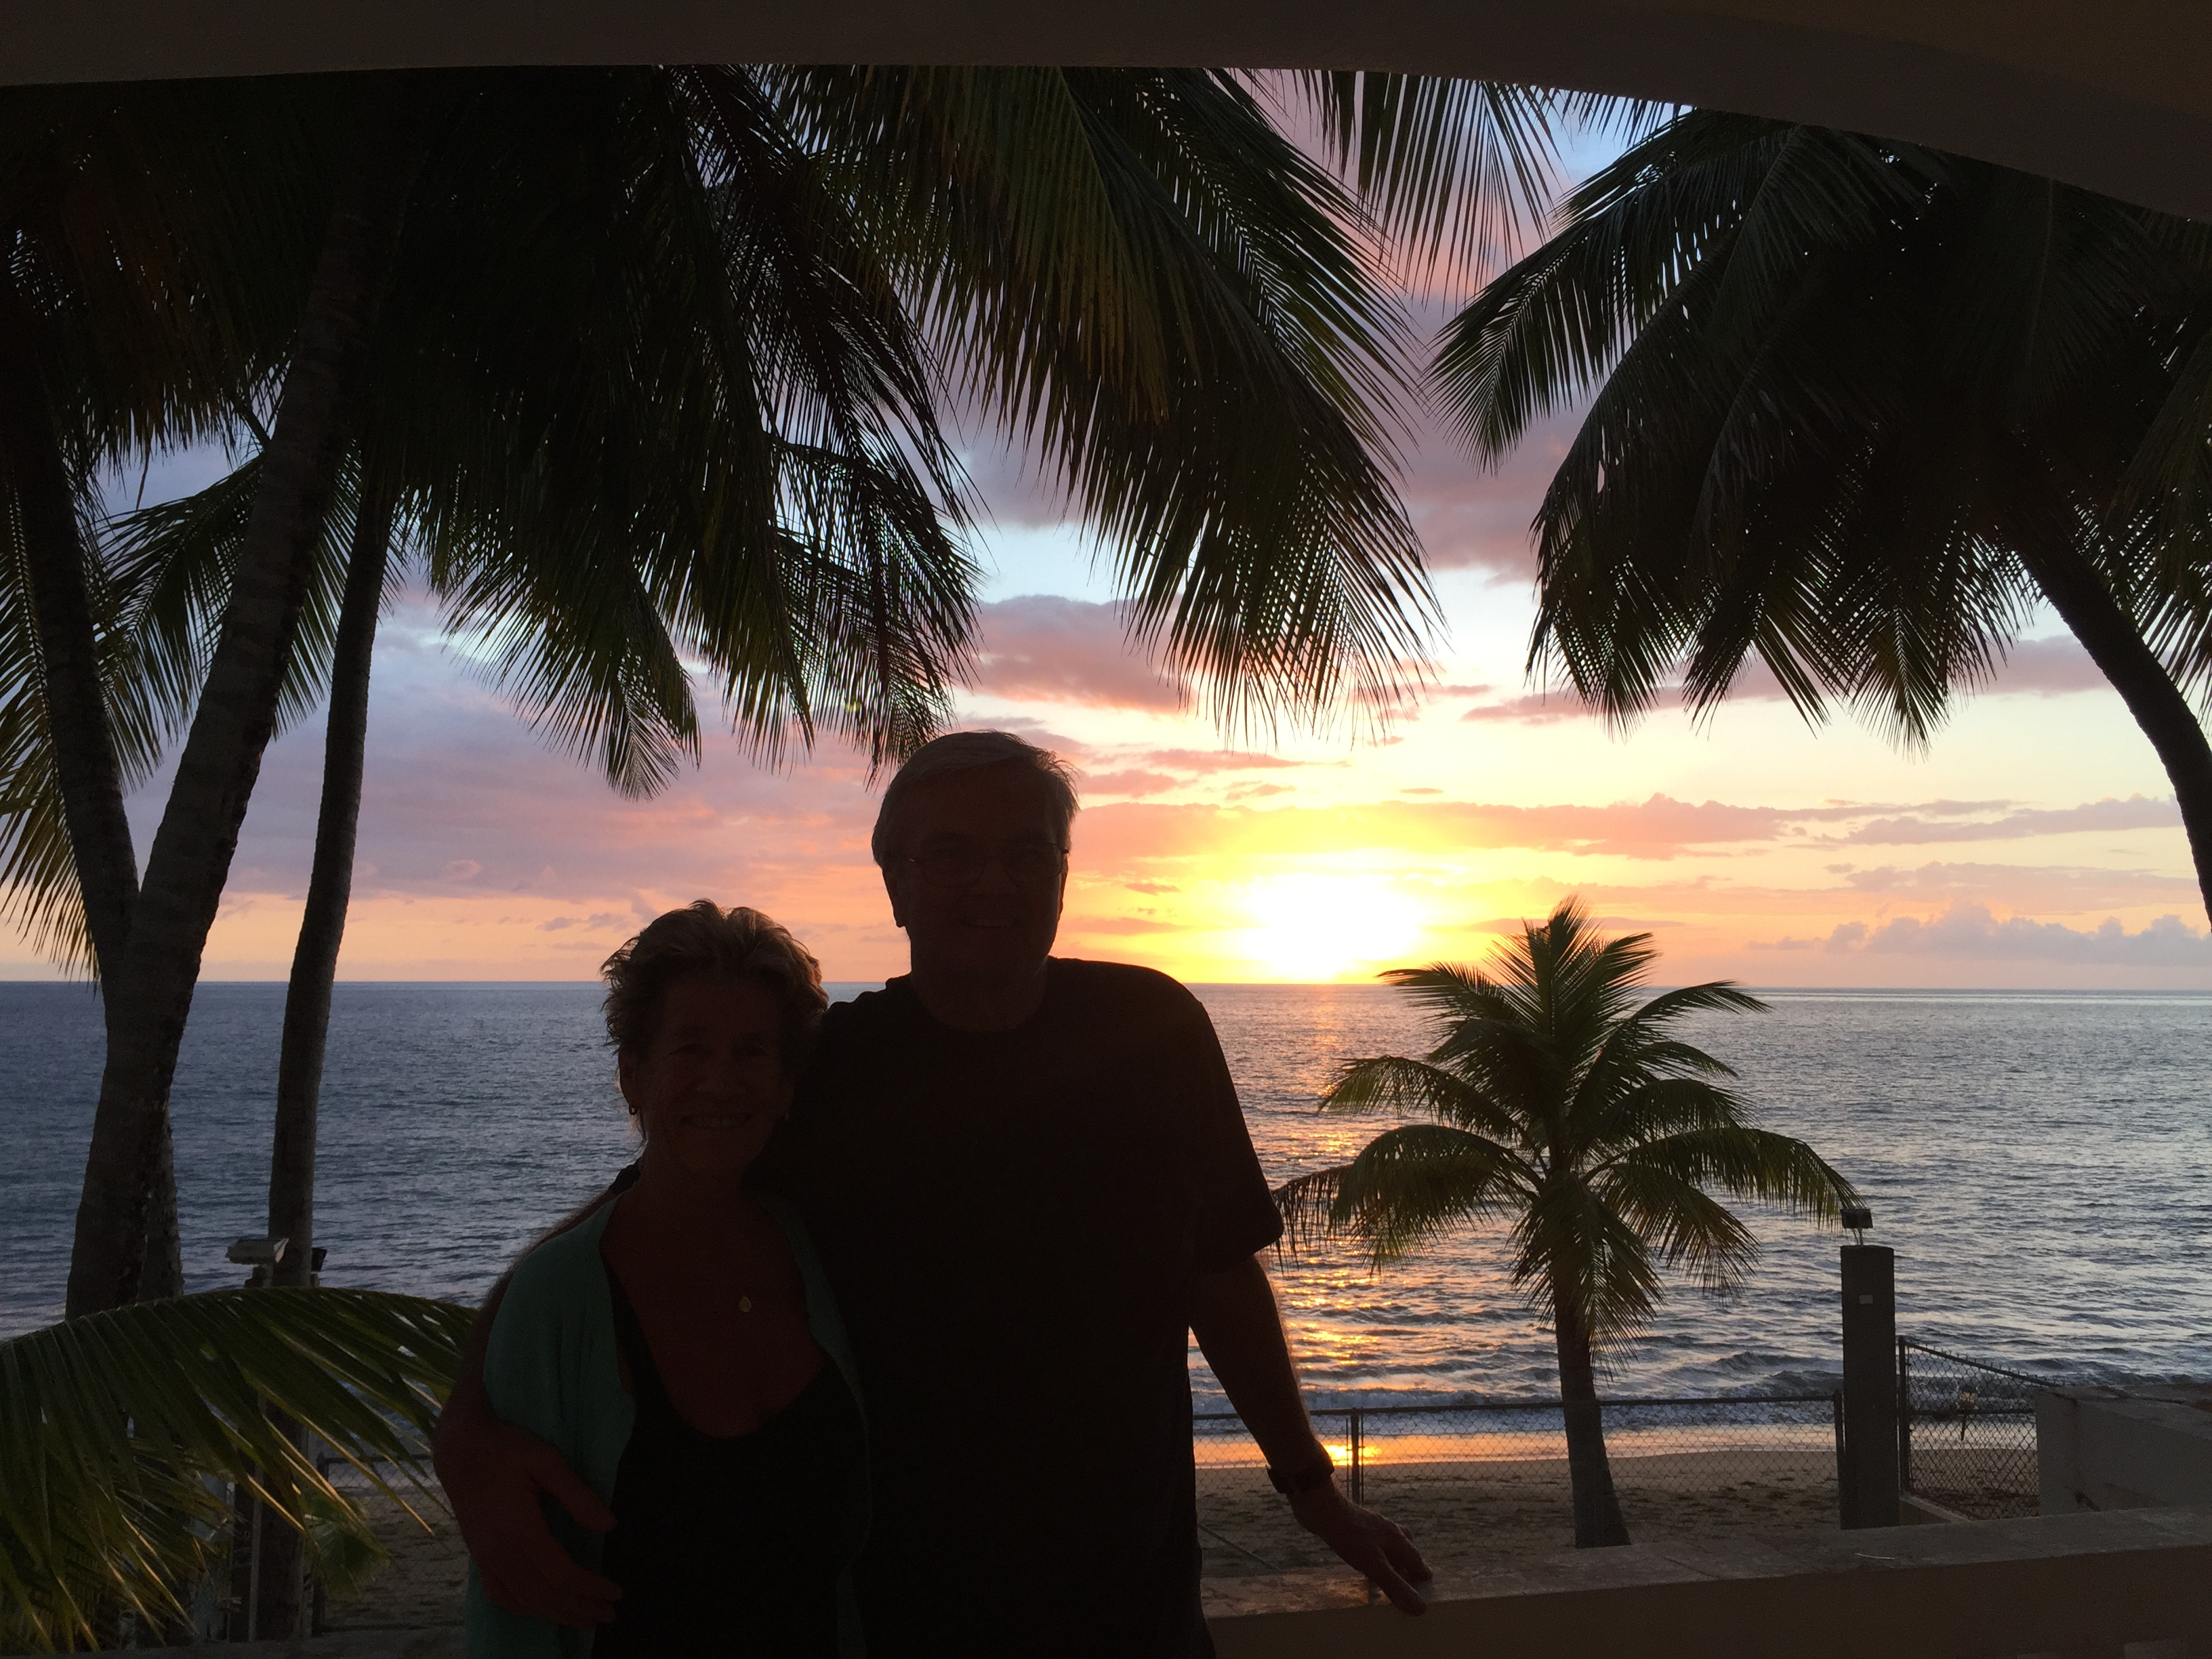 Montauk natives Mary and John McLaughlin enjoying the Puerto Rican sunset in February 2015.